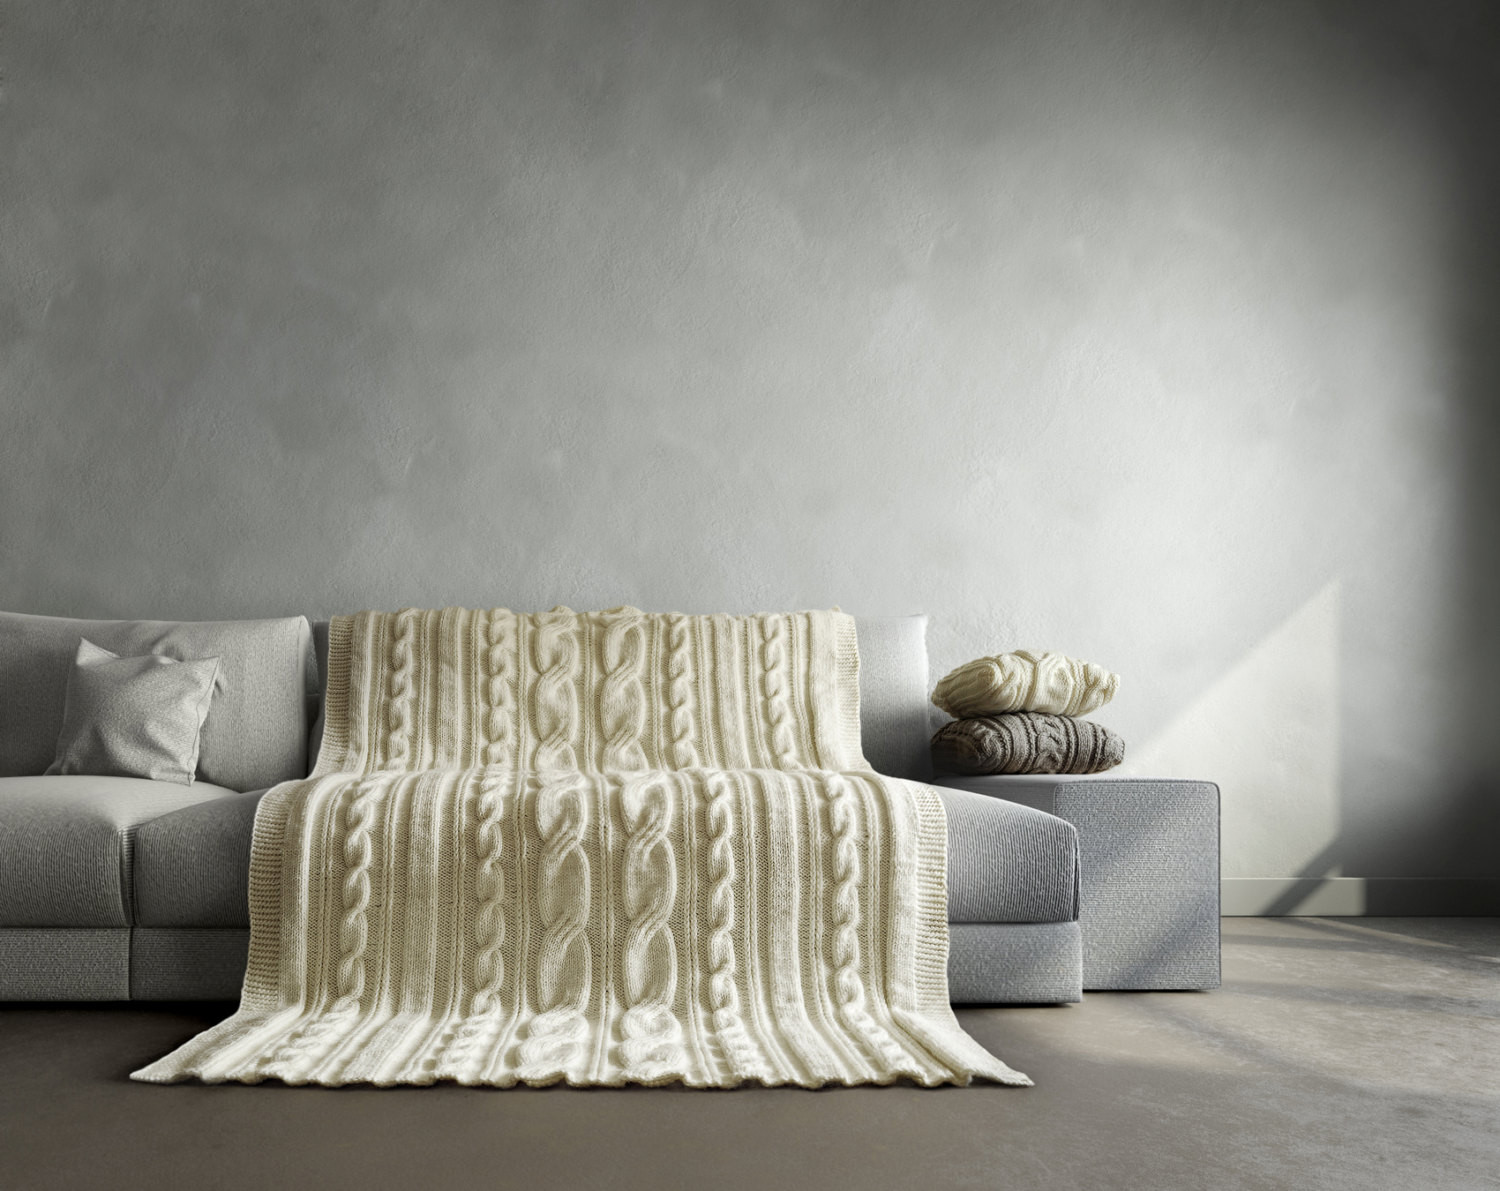 Cable Knit Blanket Elegant Cable Knit Blanket It Fits Perfect for Bed and Couch Will Be Of Incredible 49 Pictures Cable Knit Blanket